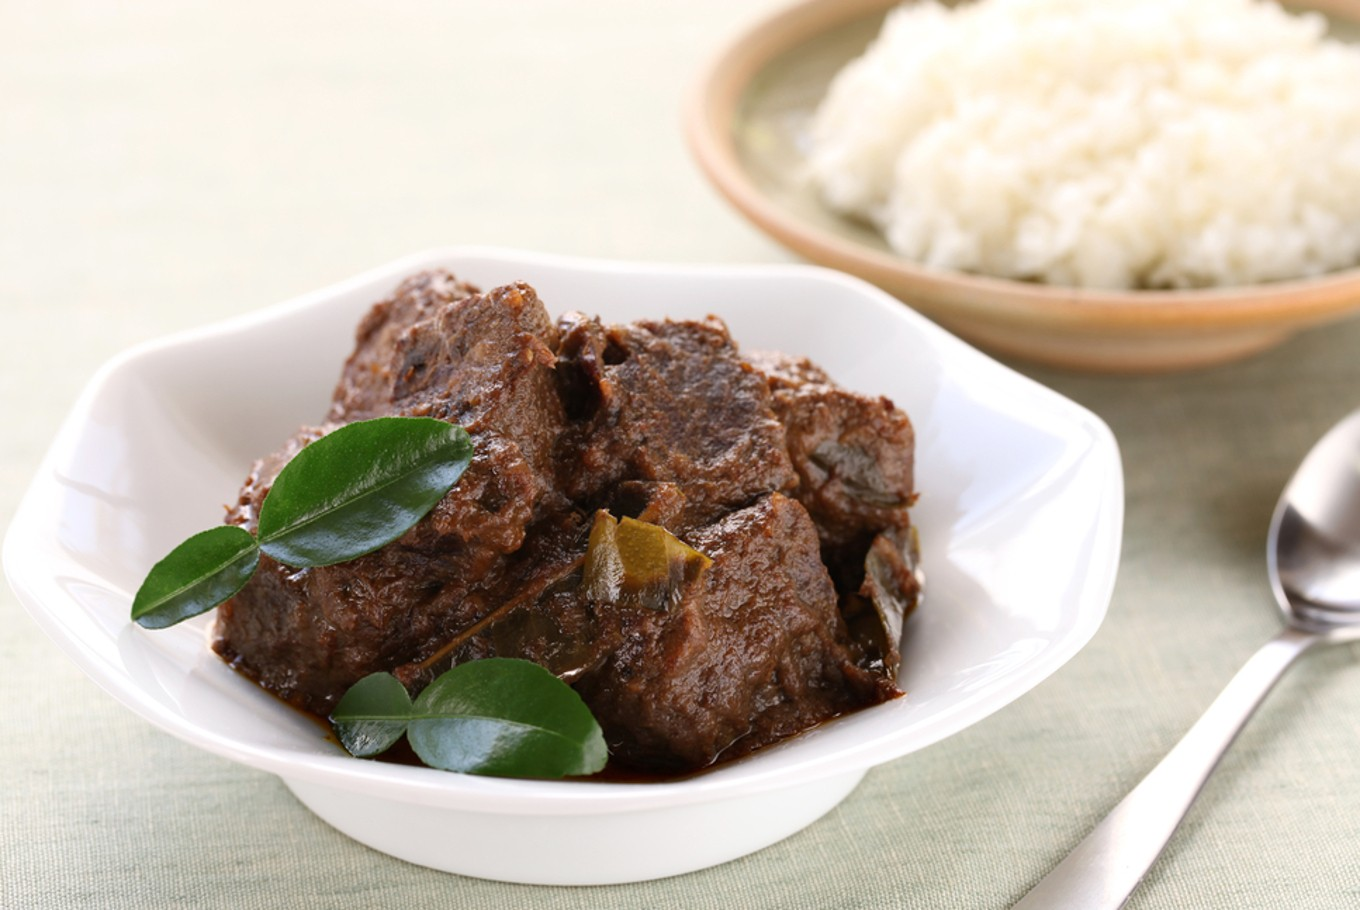 Why beef rendang is the right food to send to natural disaster victims